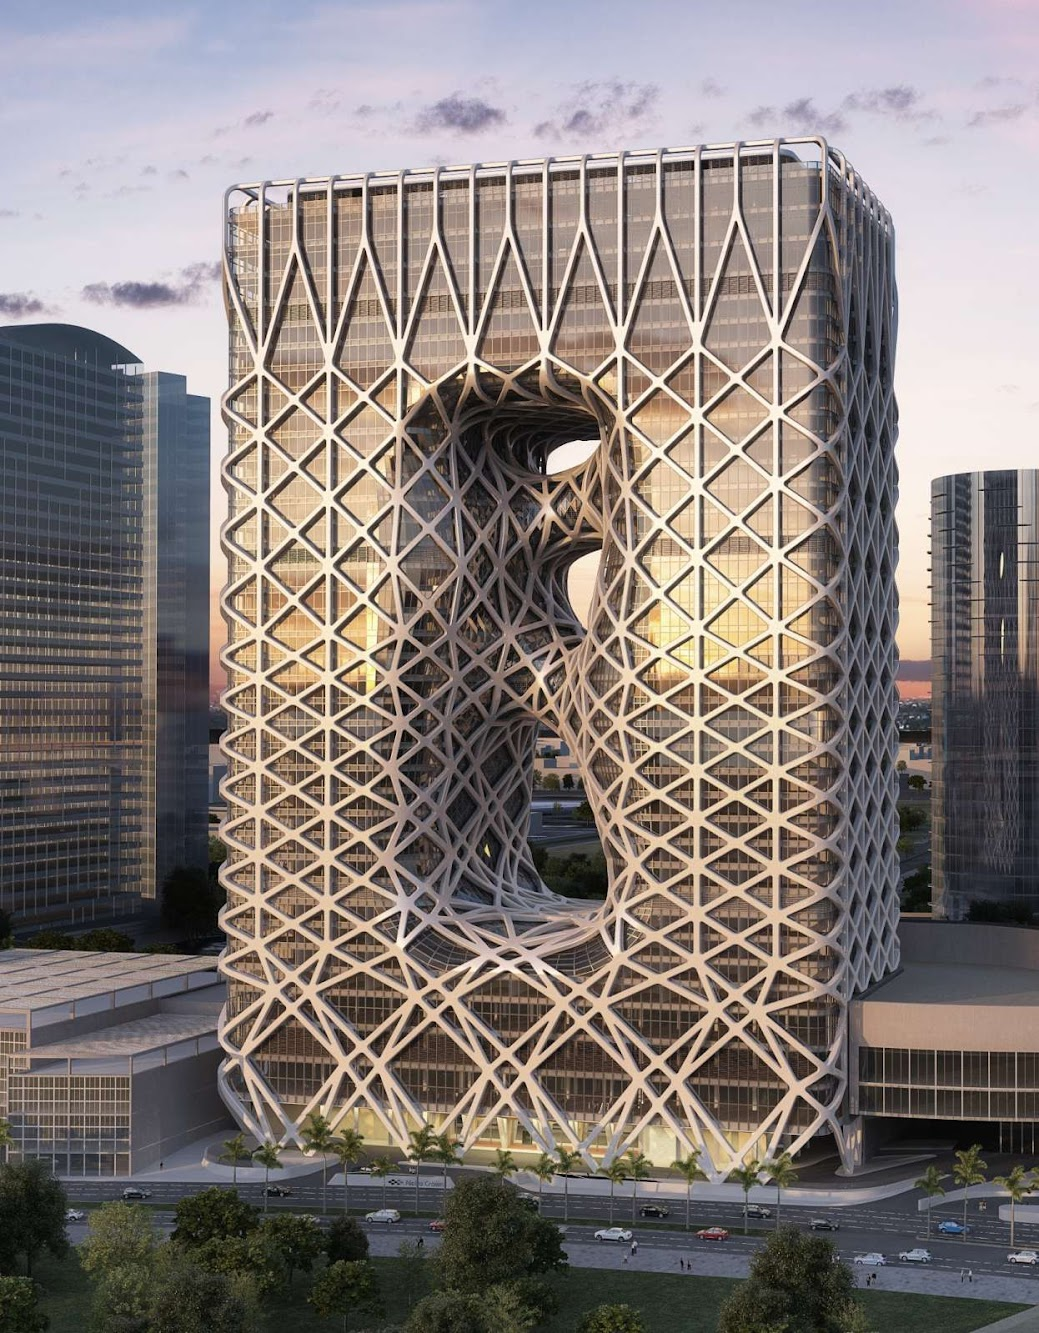 New Hotel in Macau by Zaha Hadid